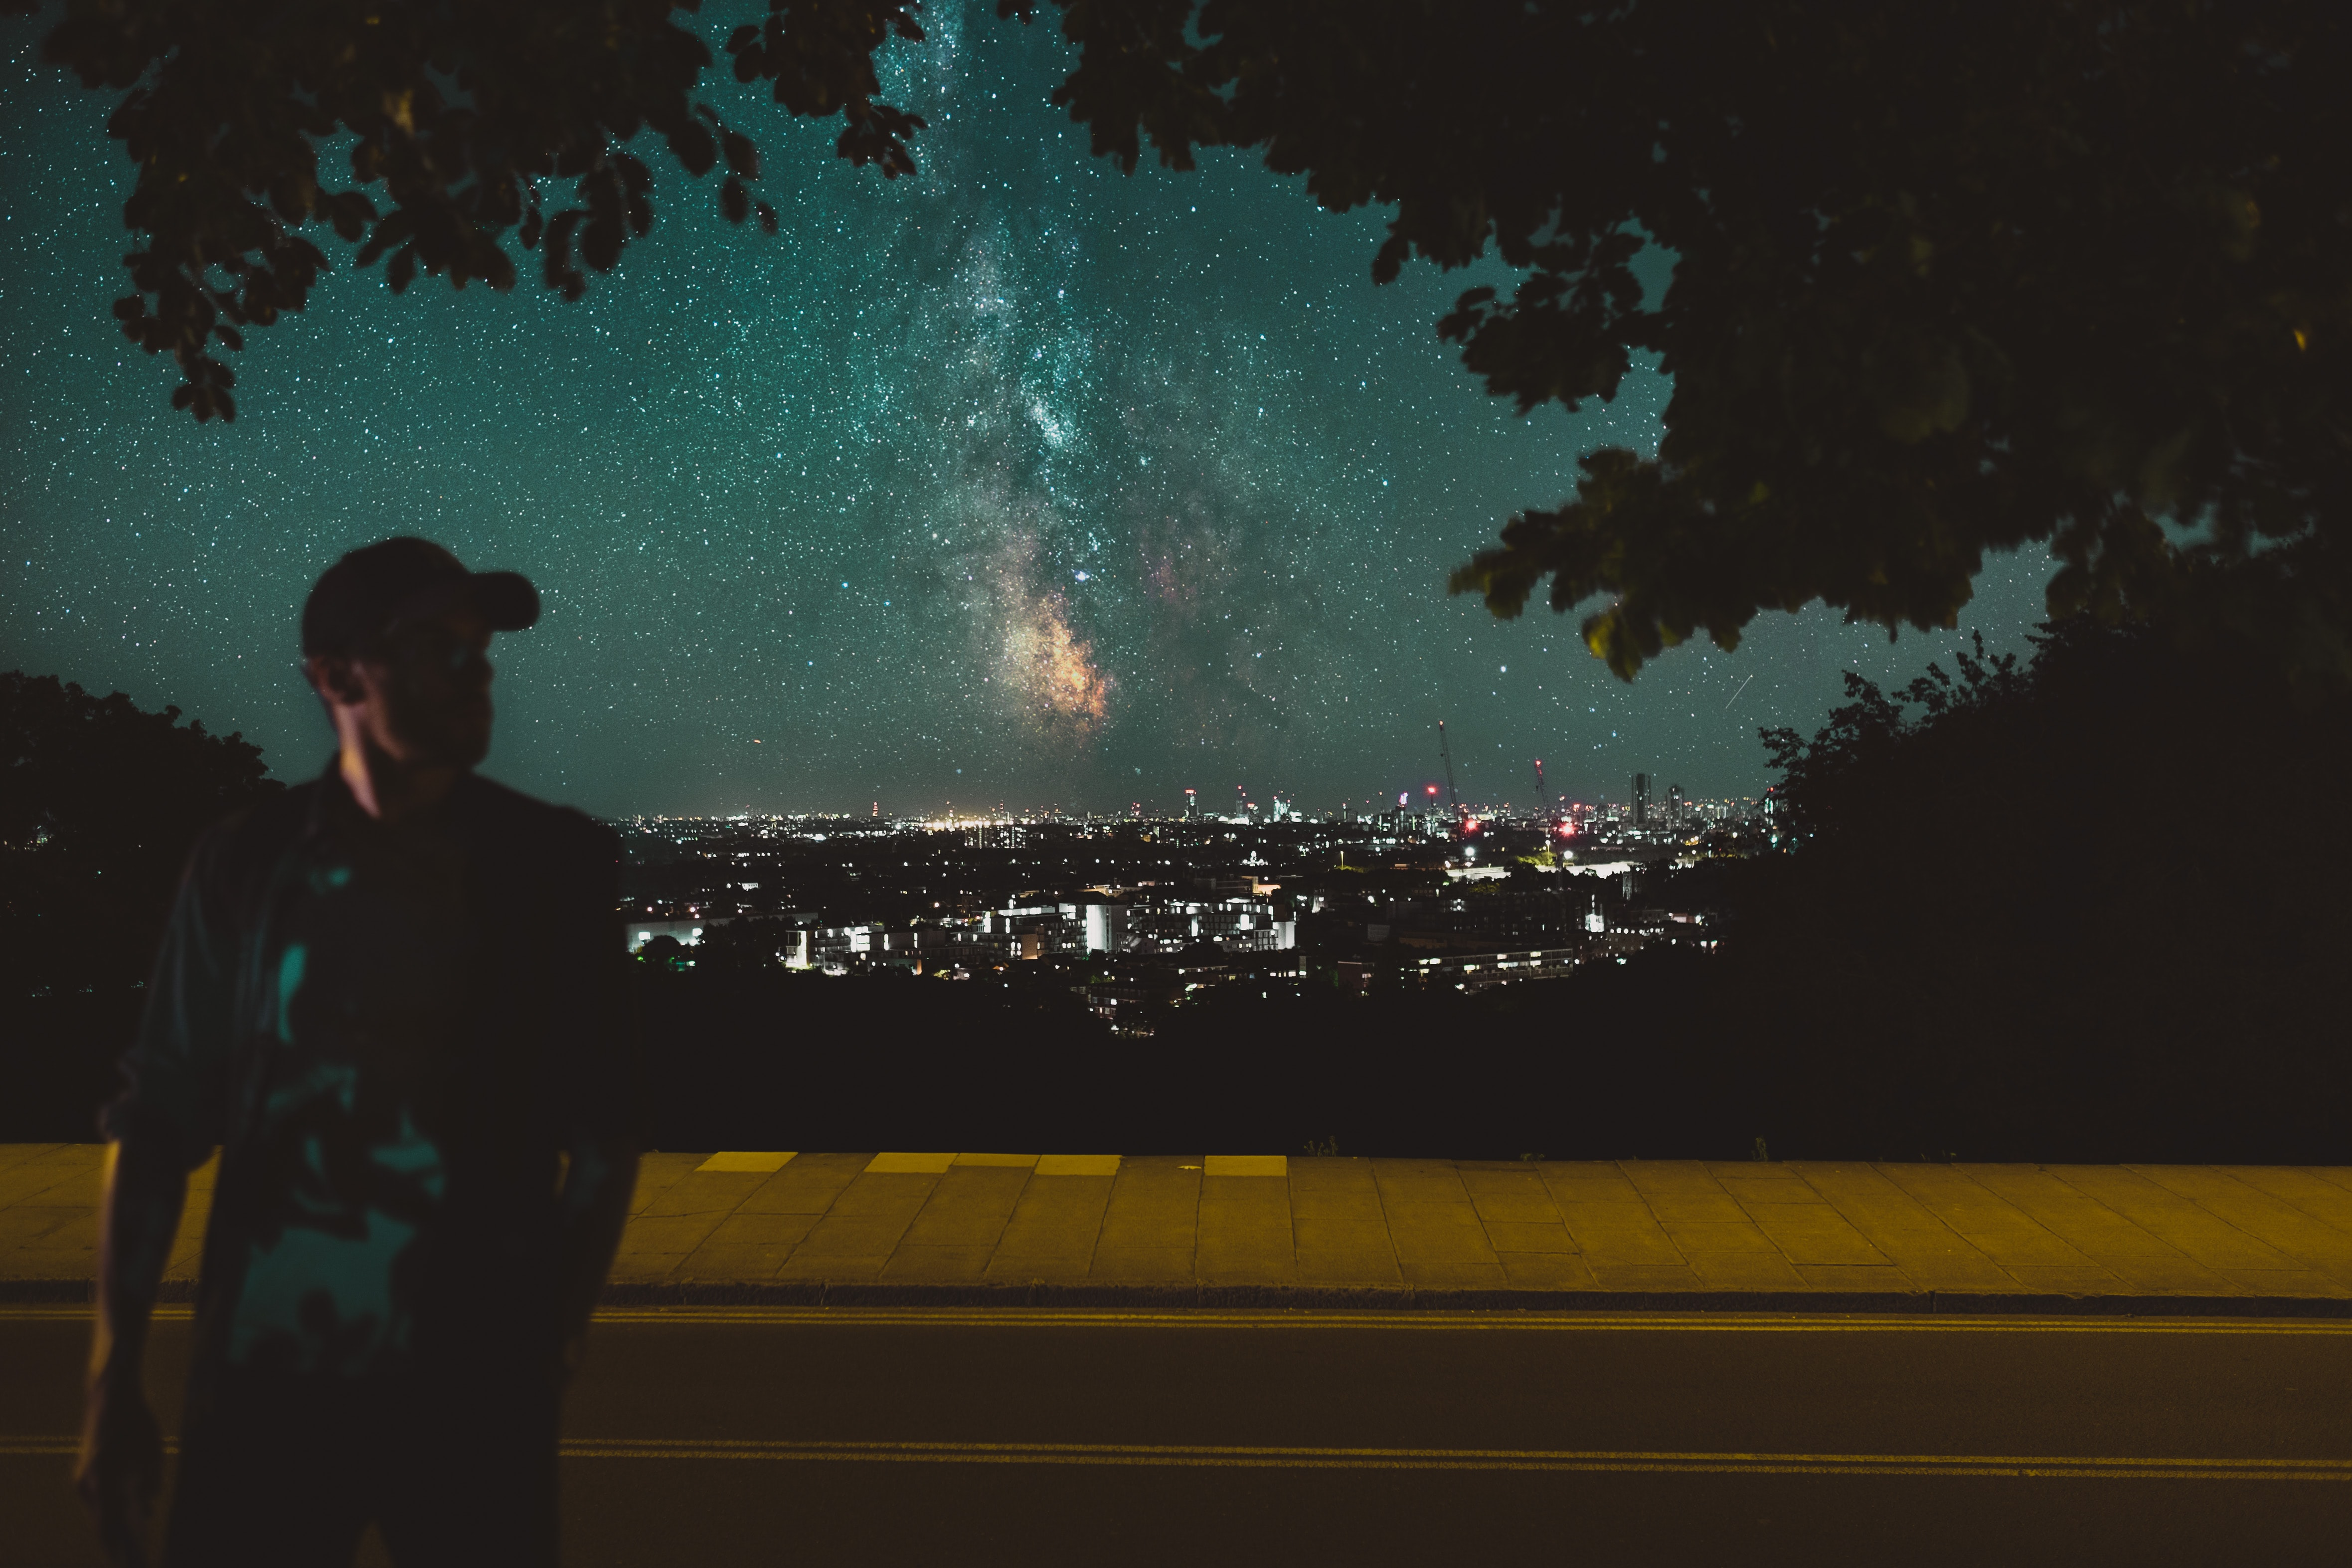 man walking on street with milky way galaxy view photo